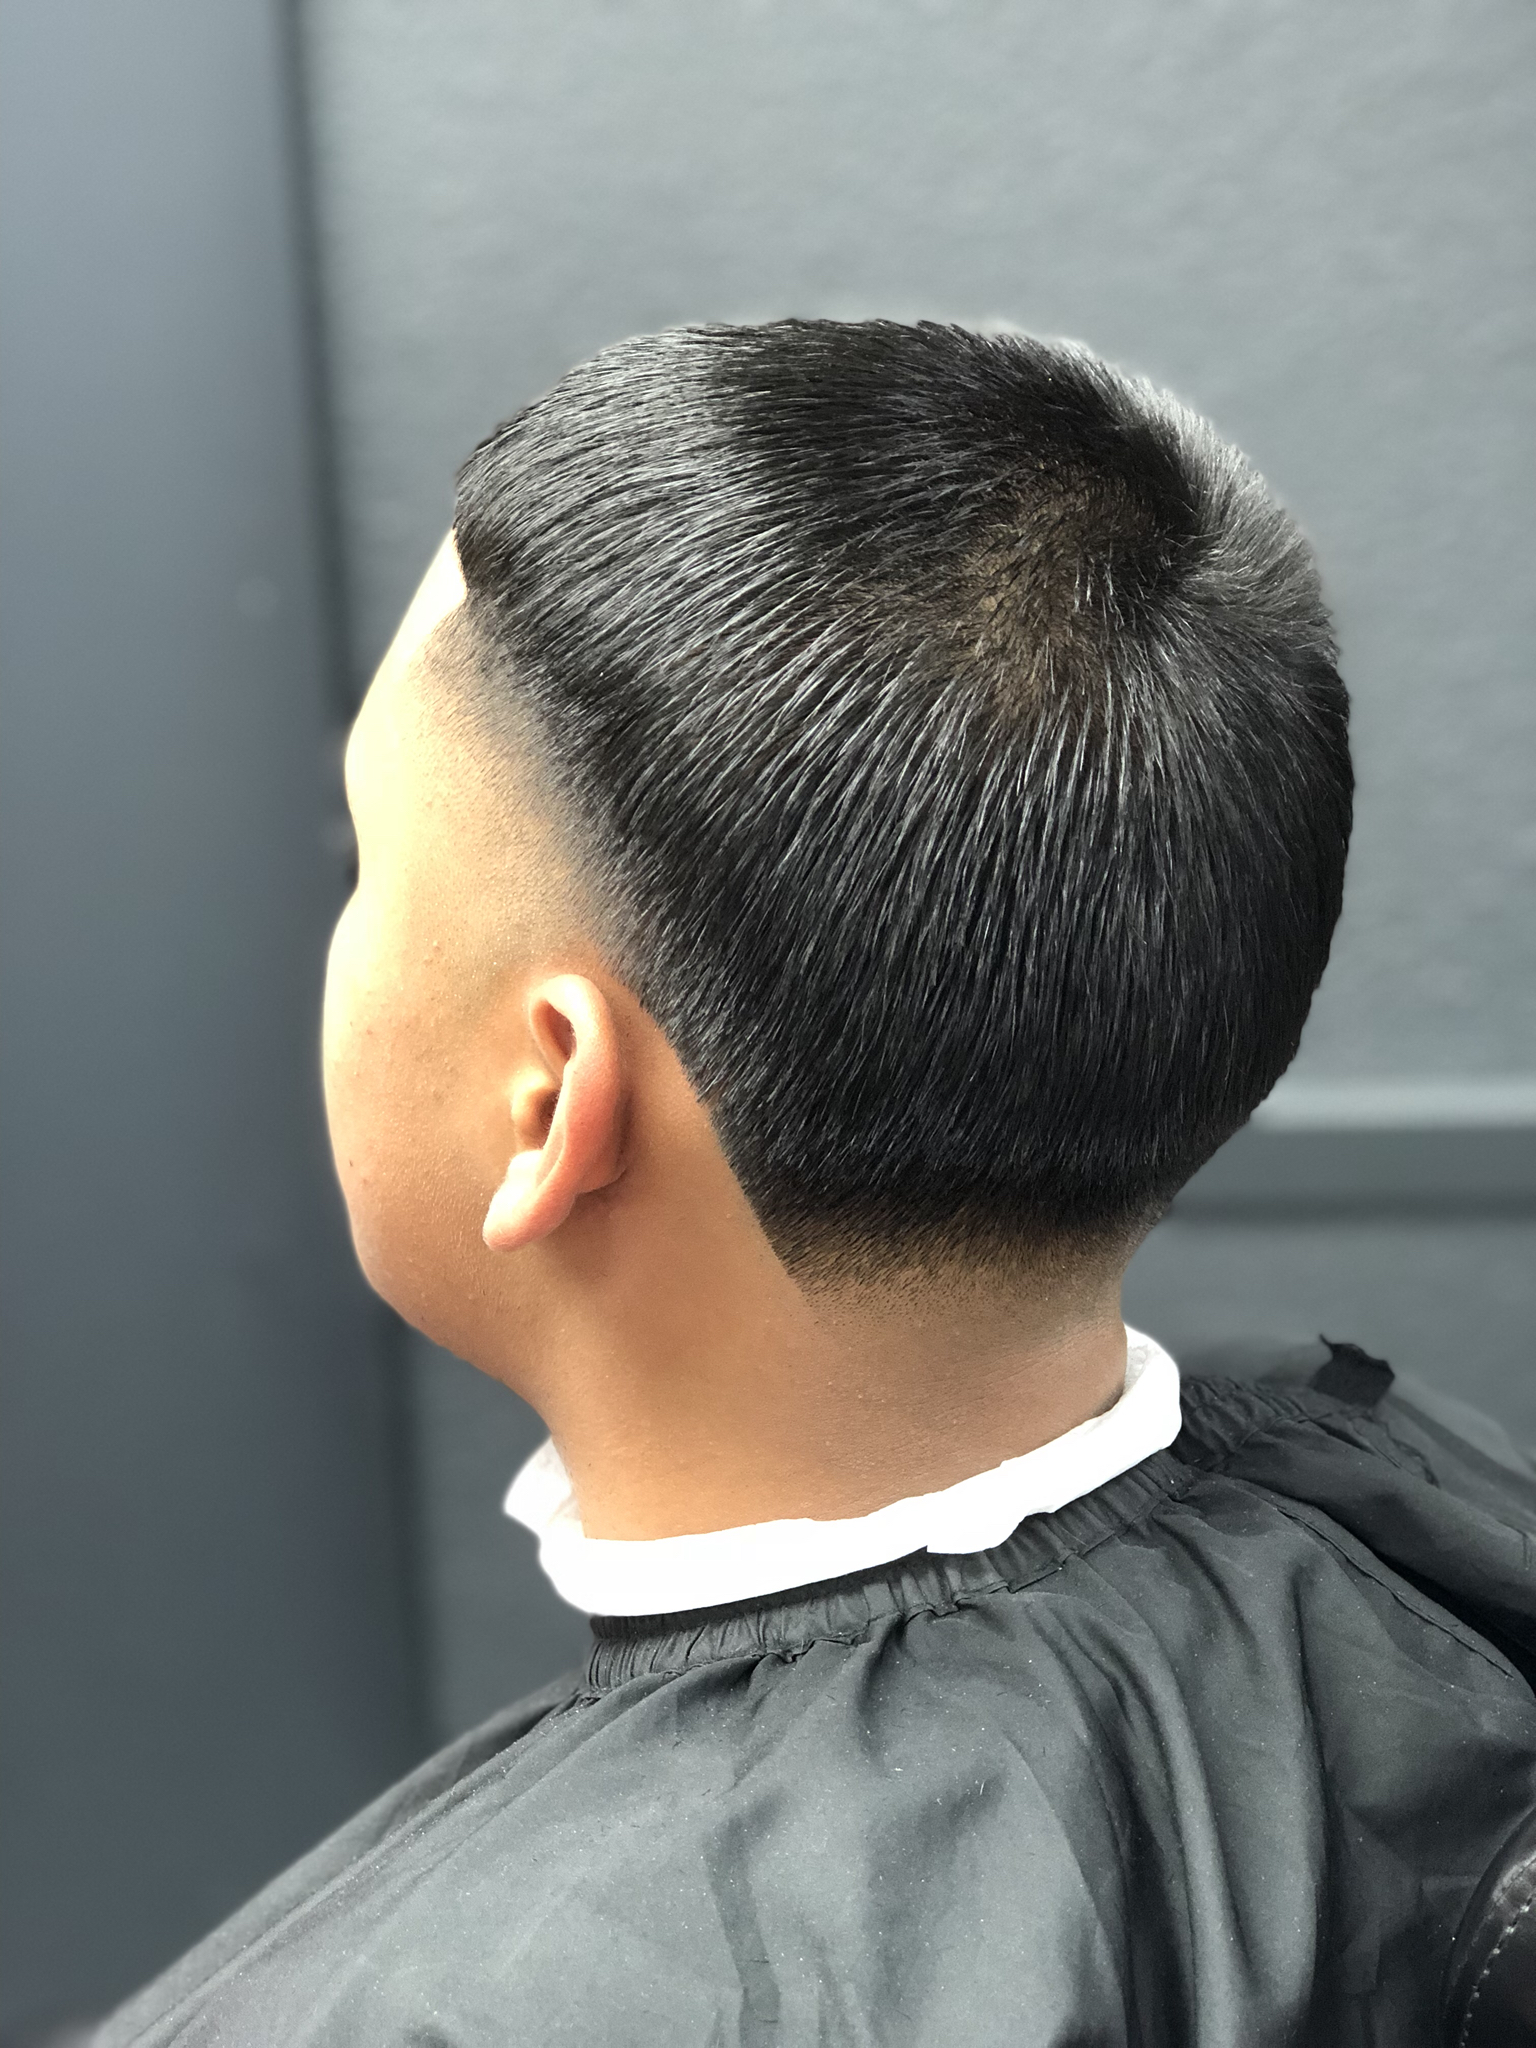 dominican barber shops near me